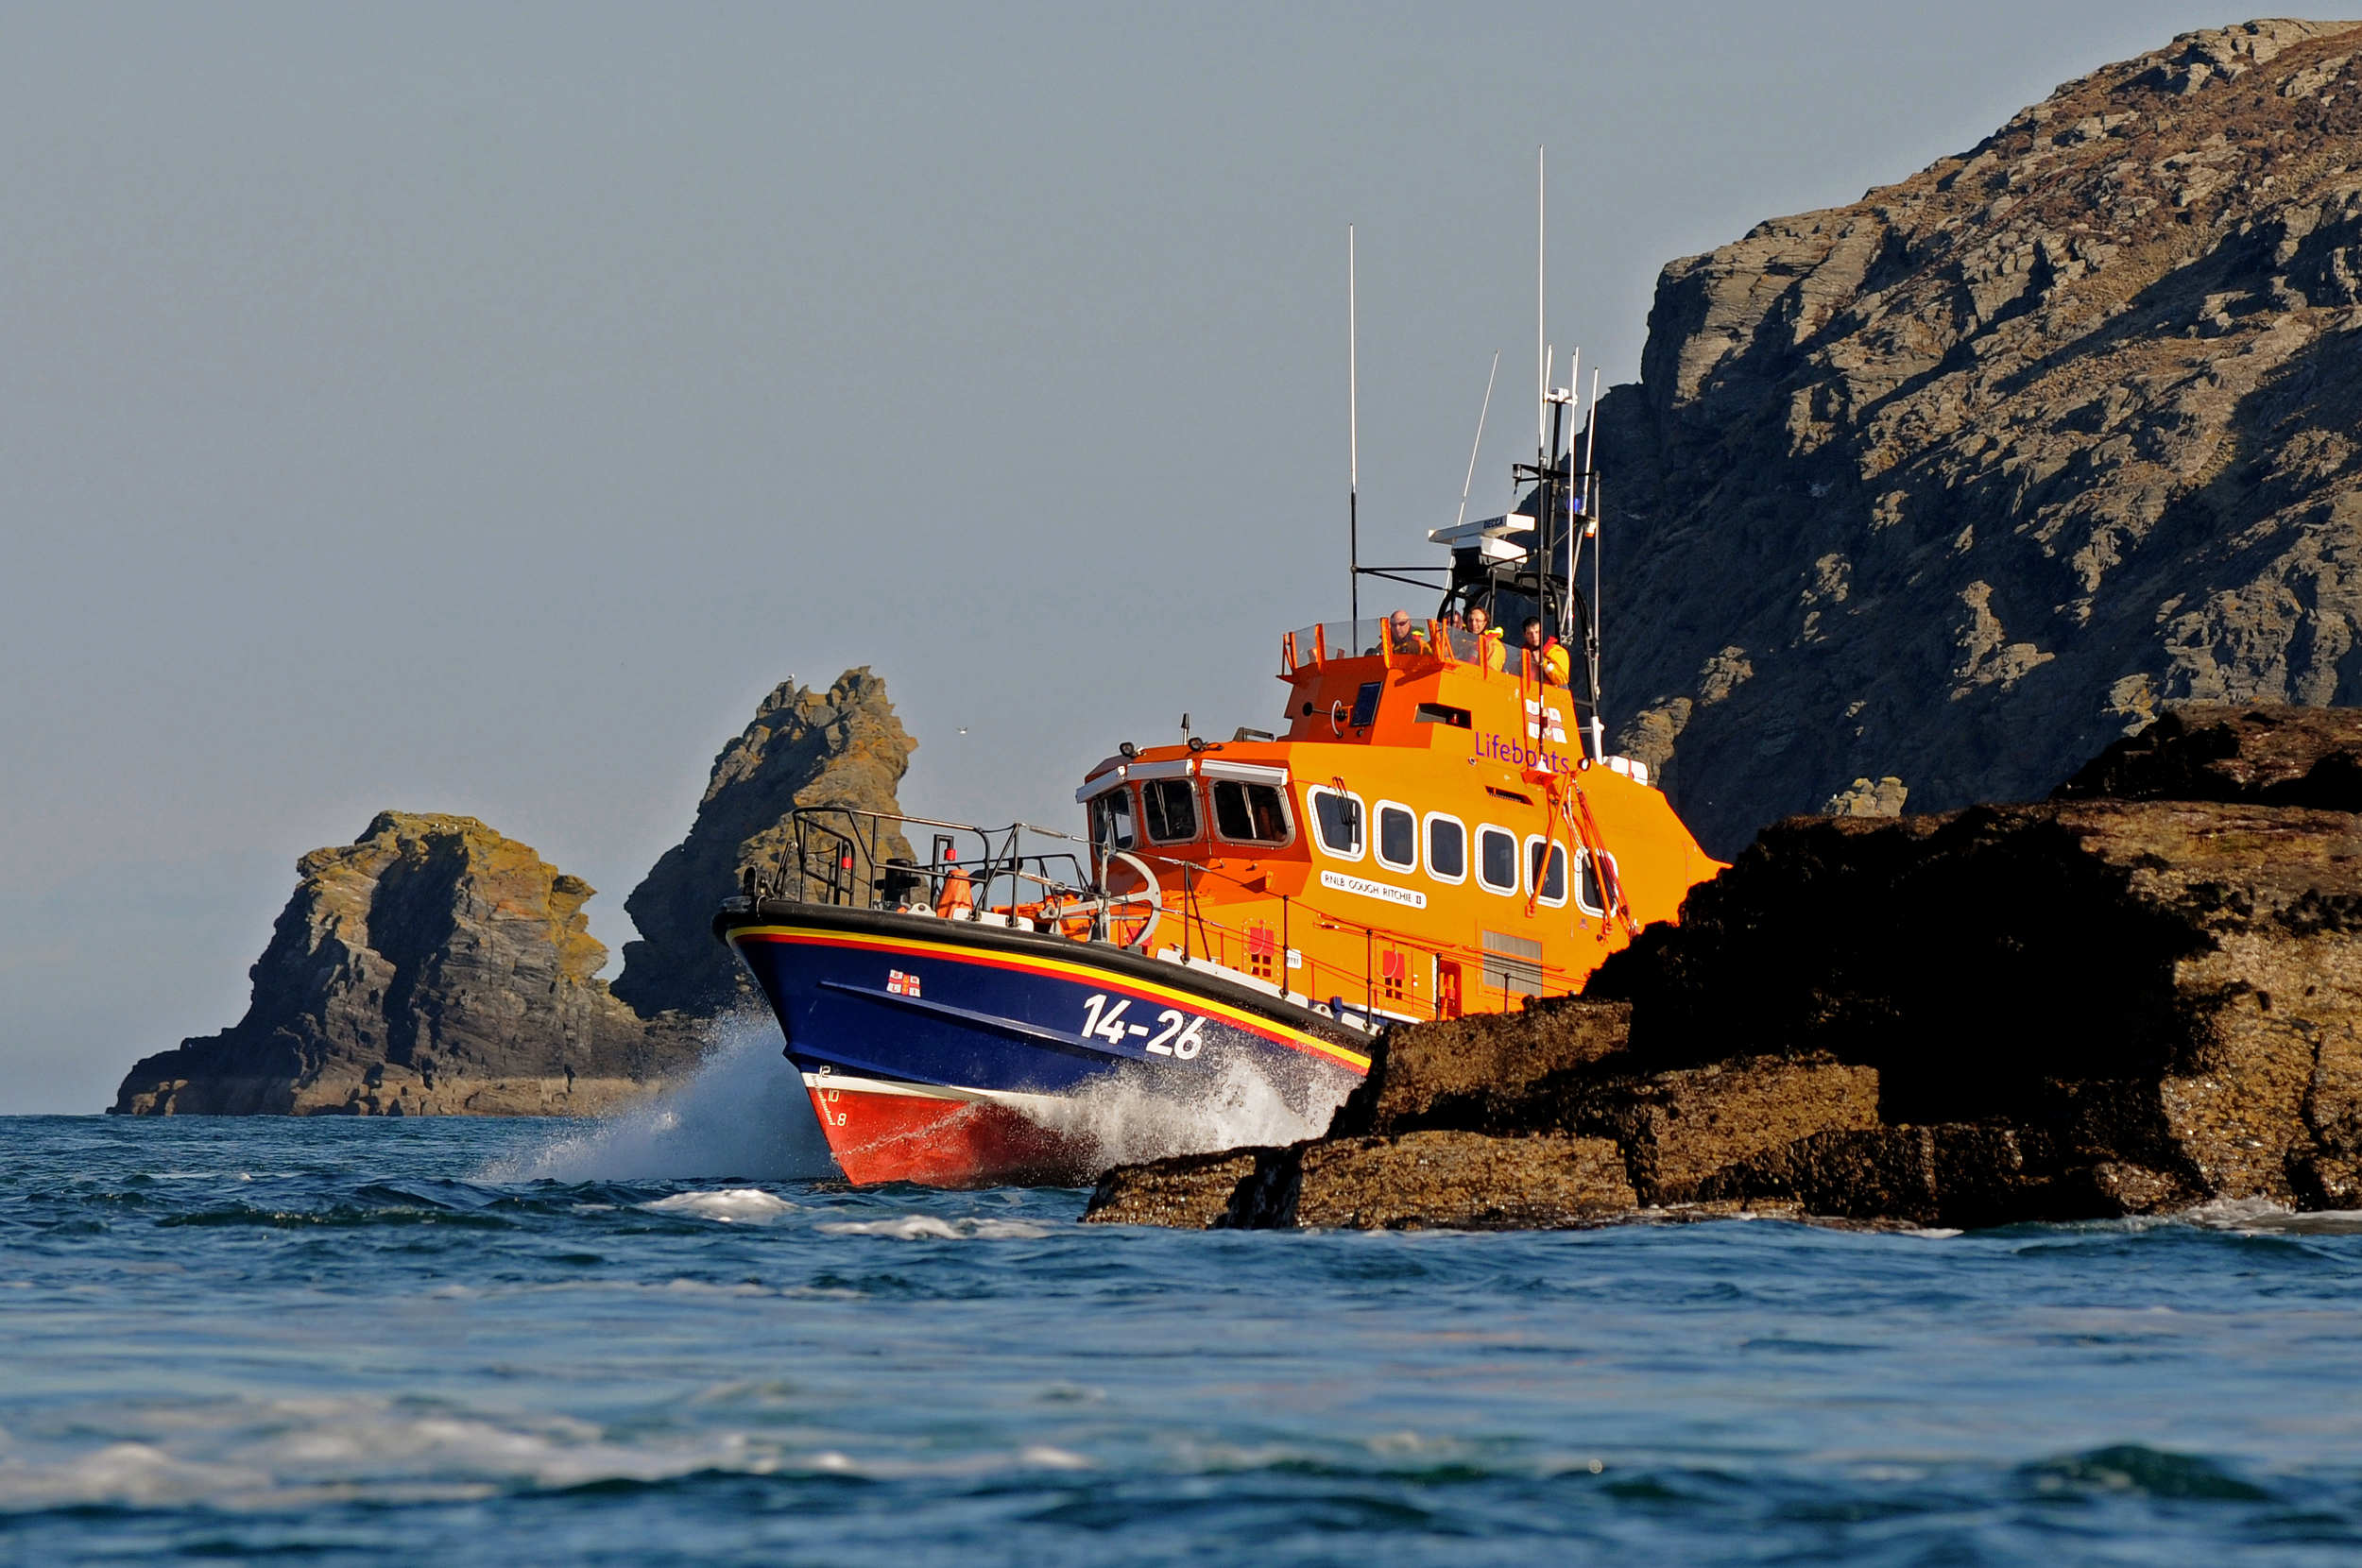 Port st Mary Lifeboat, the Trent Class 'Gough Ritchie II', around the south coast of the Isle of Man.